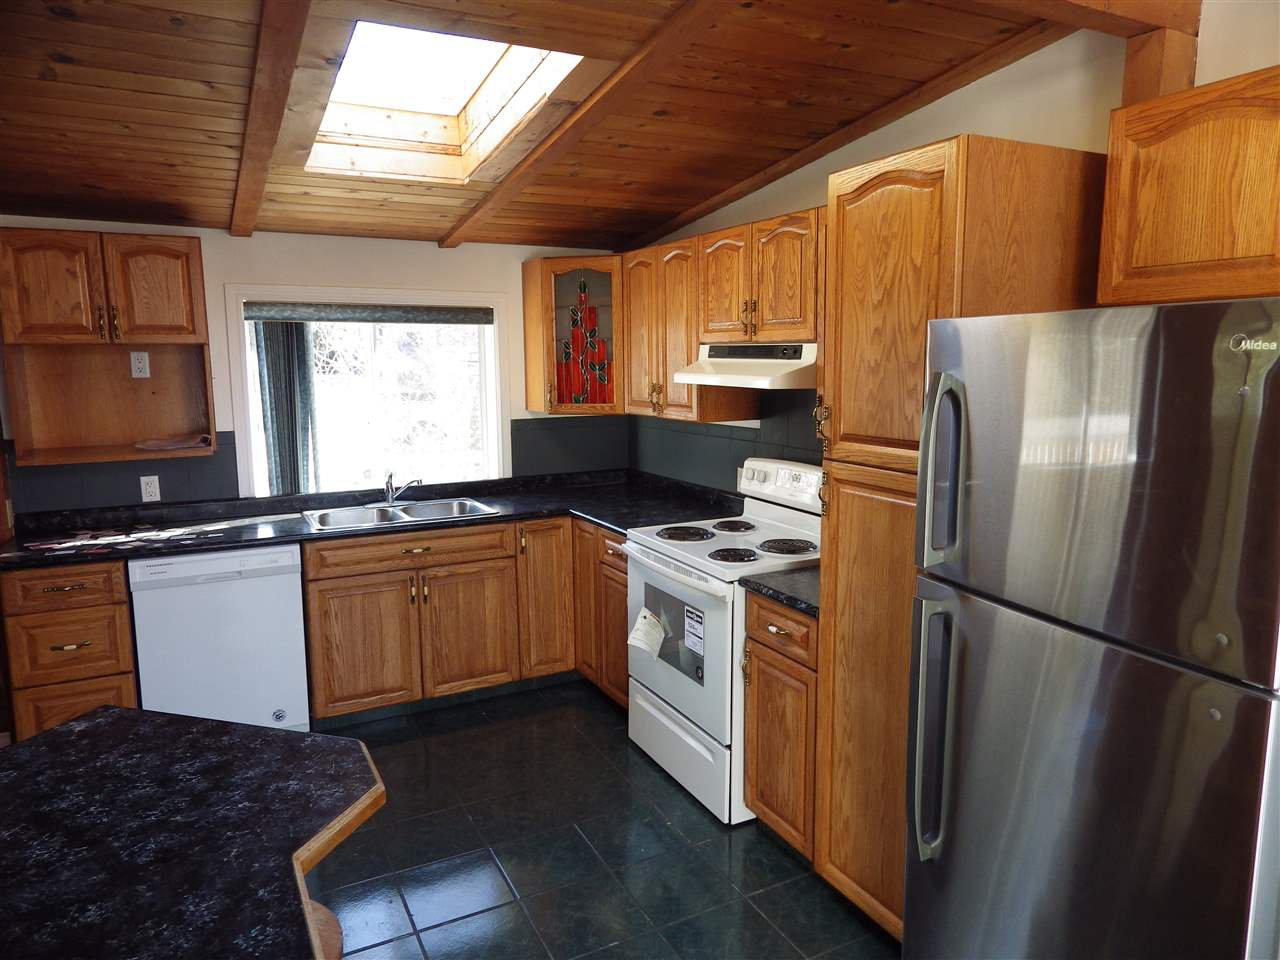 Photo 3: Photos: 4767 FIR Road in Sechelt: Sechelt District House for sale (Sunshine Coast)  : MLS®# R2342148